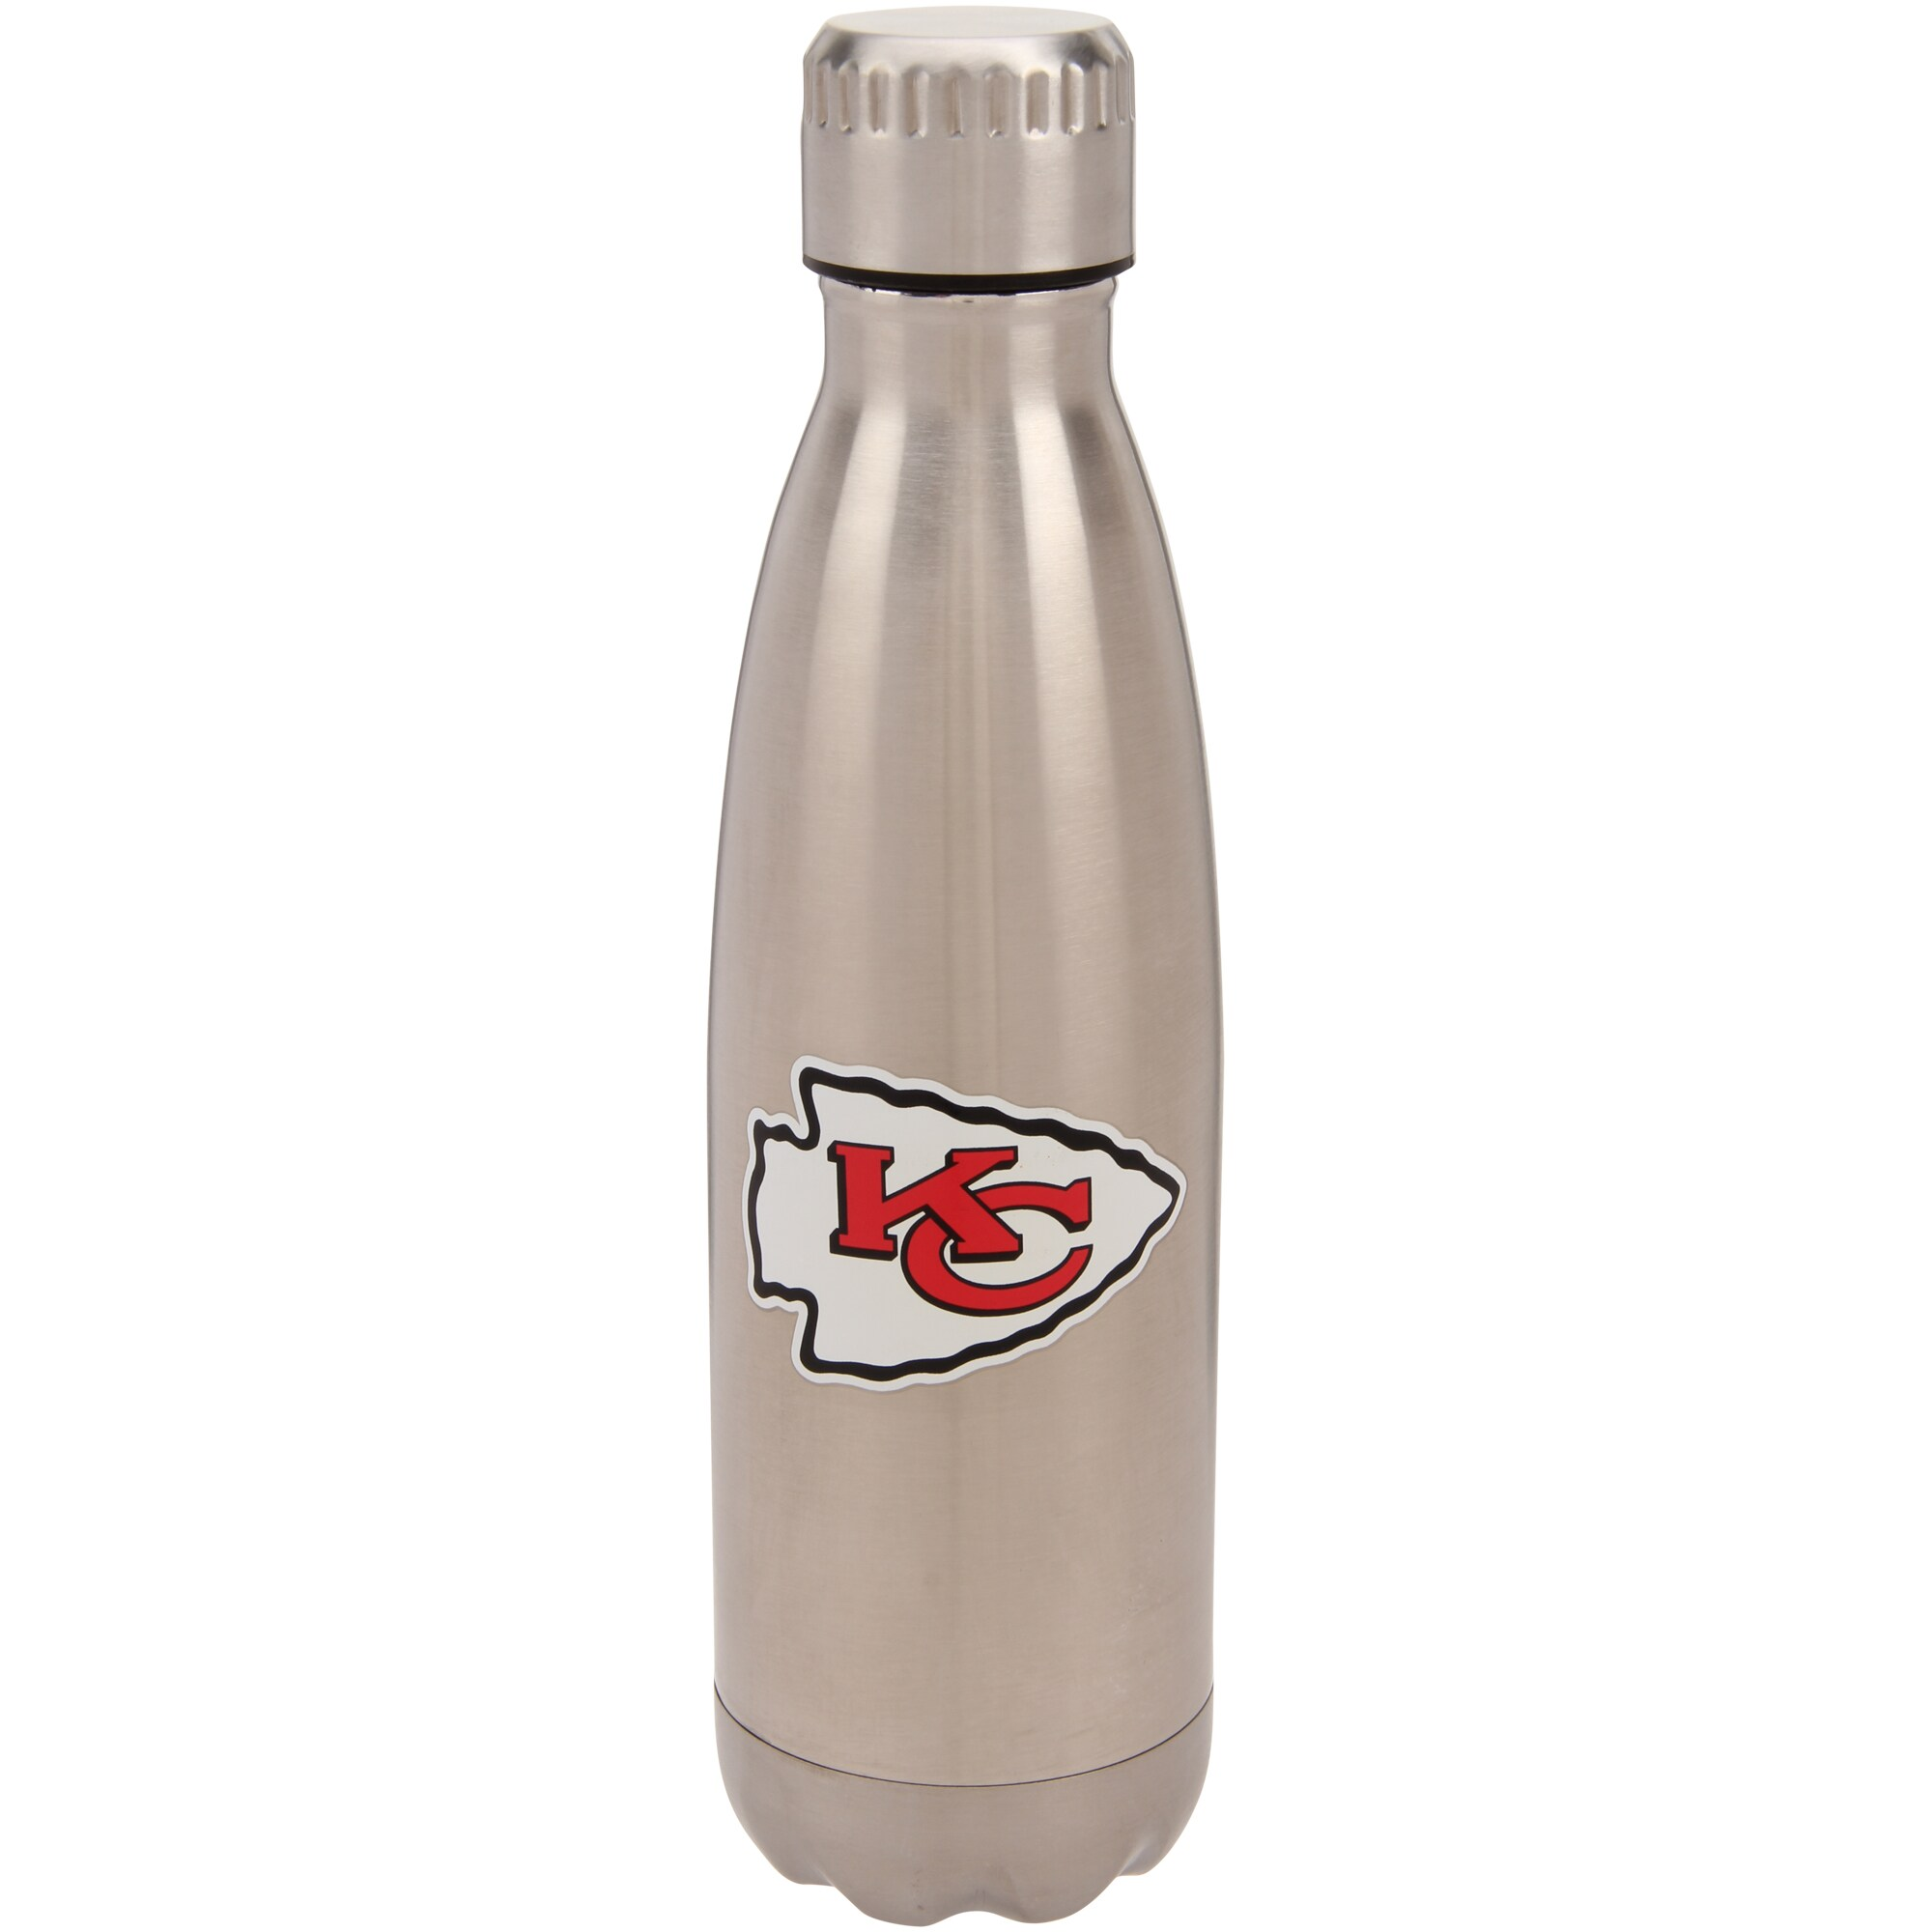 Kansas City Chiefs 16oz. Stainless Steel Water Bottle